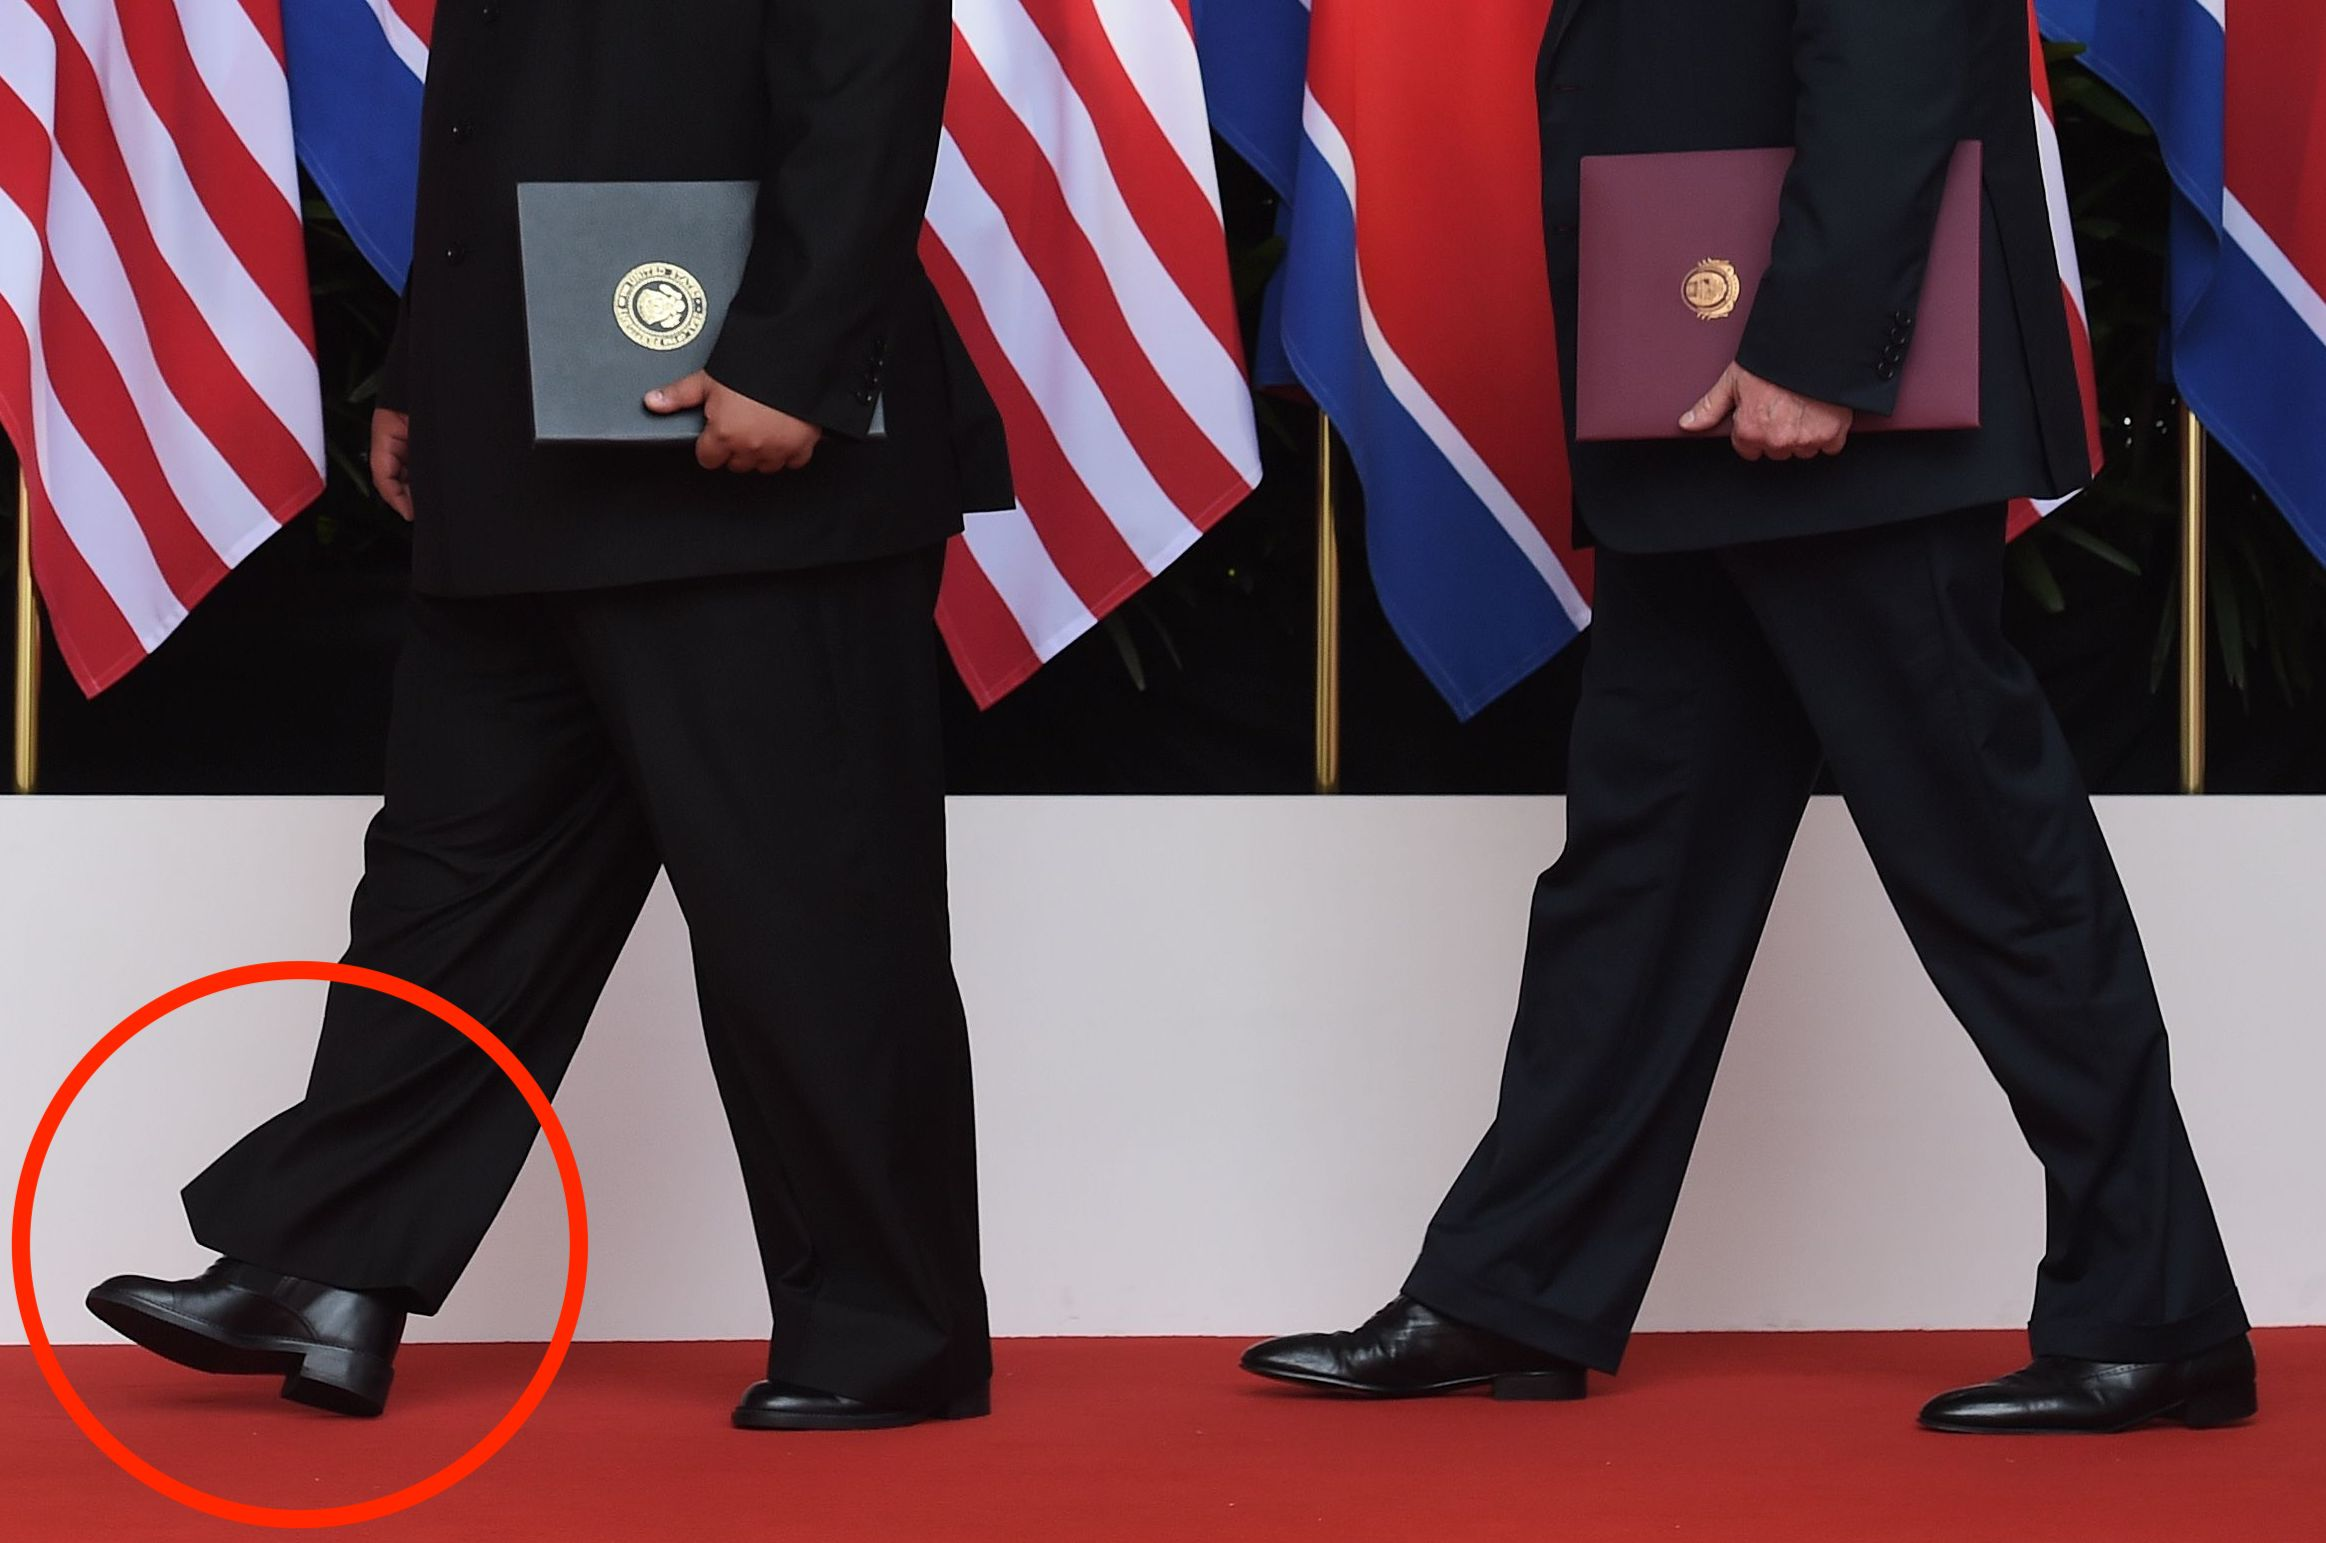 US President Donald Trump (R) poses with North Korea's leader Kim Jong Un focus on shoes